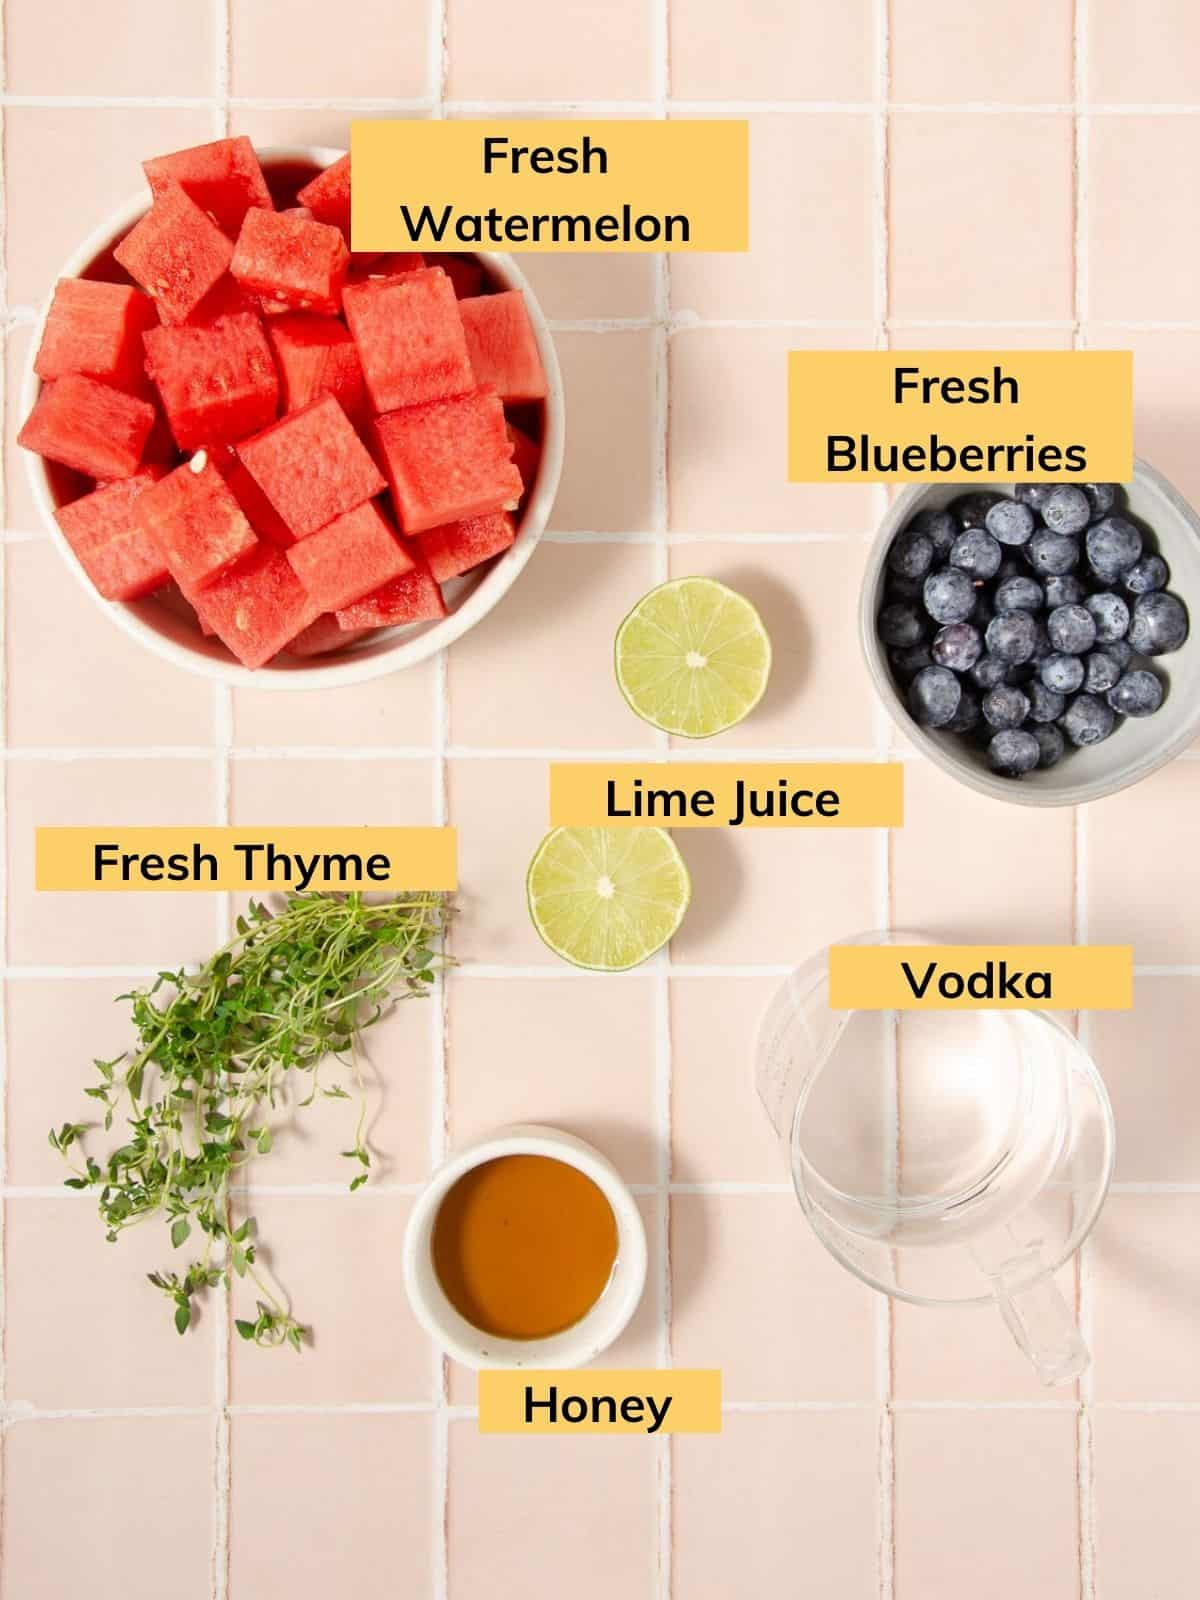 ingredients for a watermelon blueberry vodka smash pitcher: a bowl of fresh cubed watermelon, a bowl of fresh blueberries, a lime cut in half, fresh thyme sprigs, a cup of honey, and a measuring cup of vodka